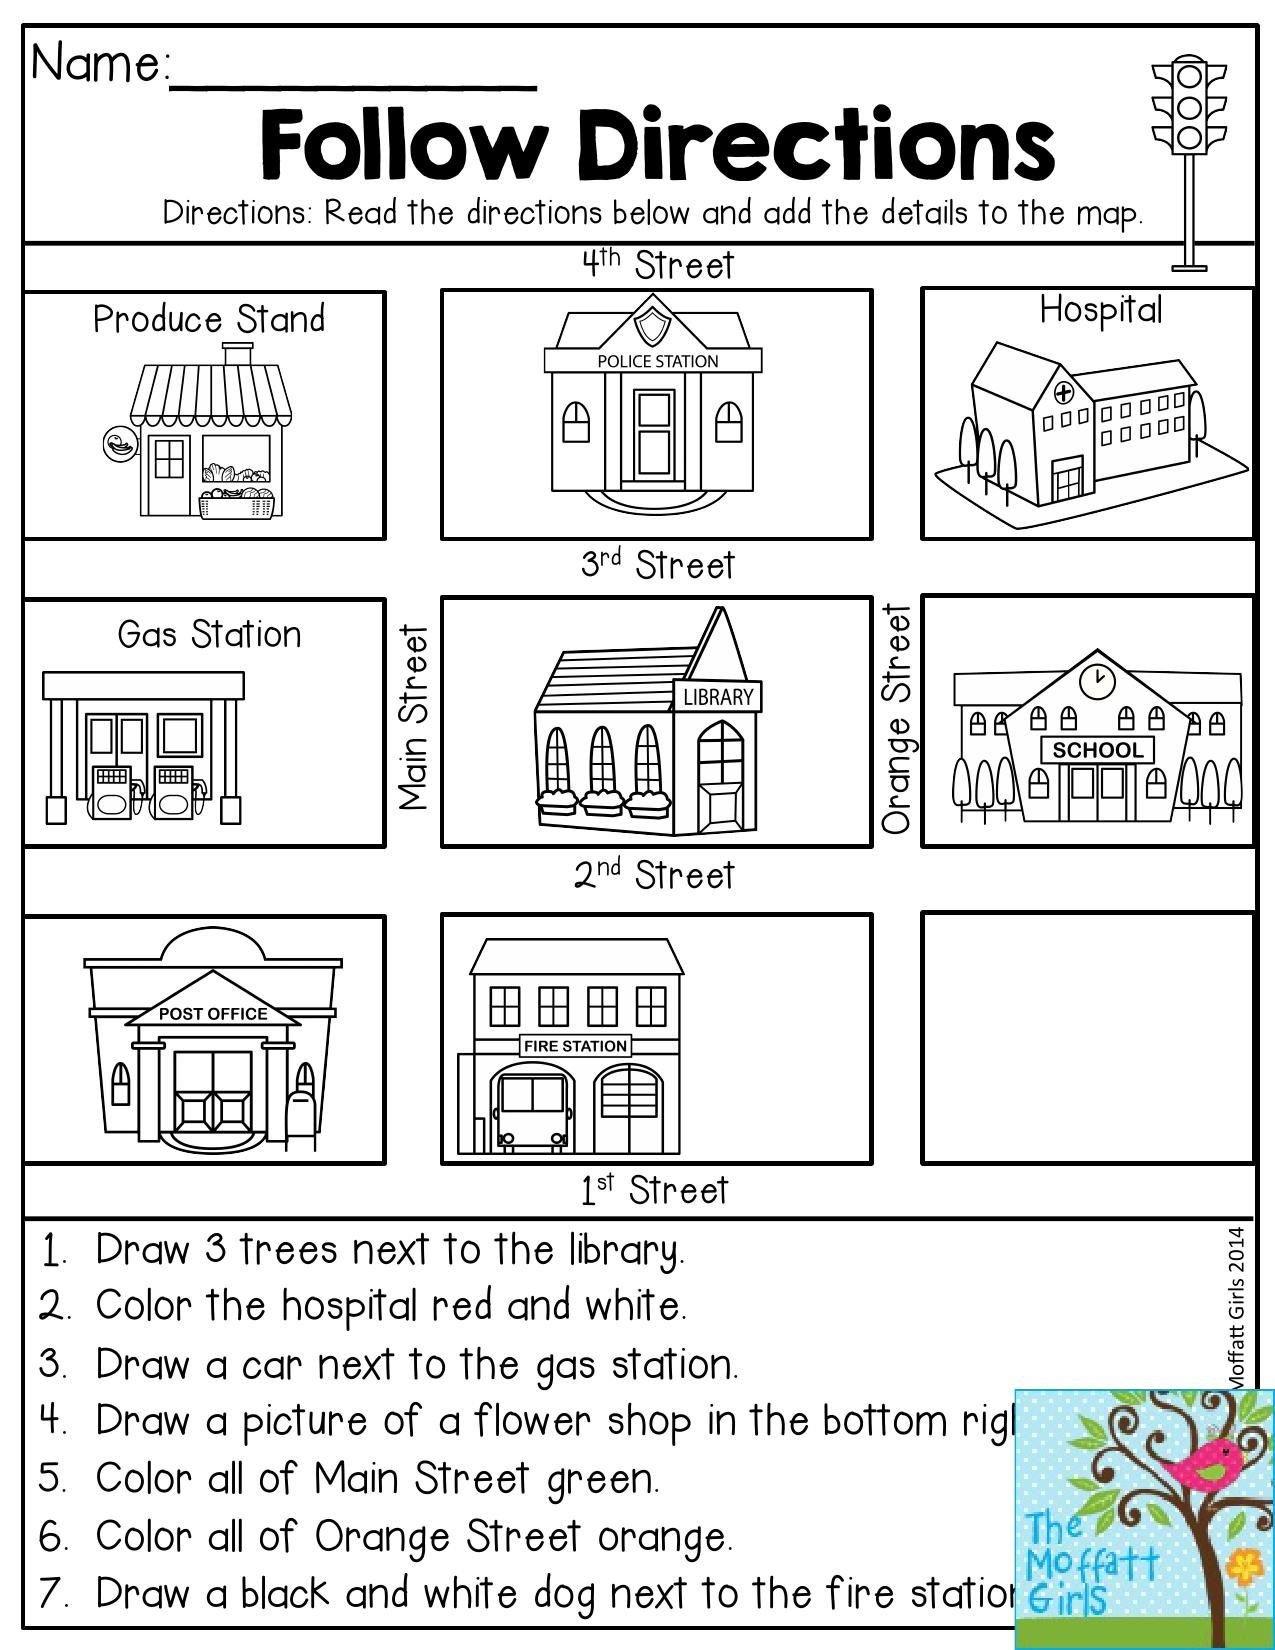 Follow Directions Worksheet Kindergarten Follow Directions Read the Directions and Add the Details